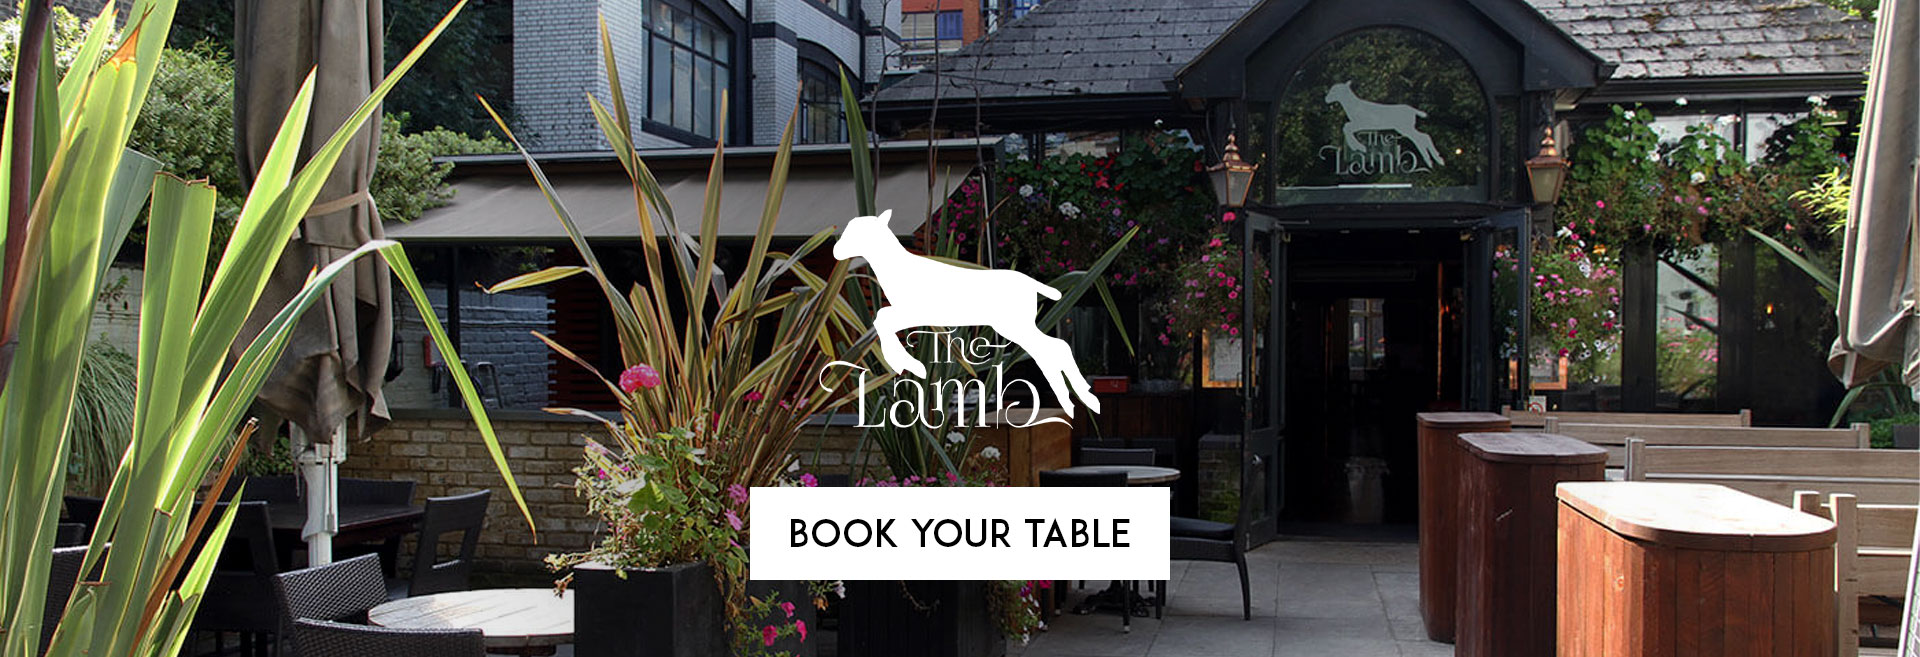 Book Your Table at The Lamb